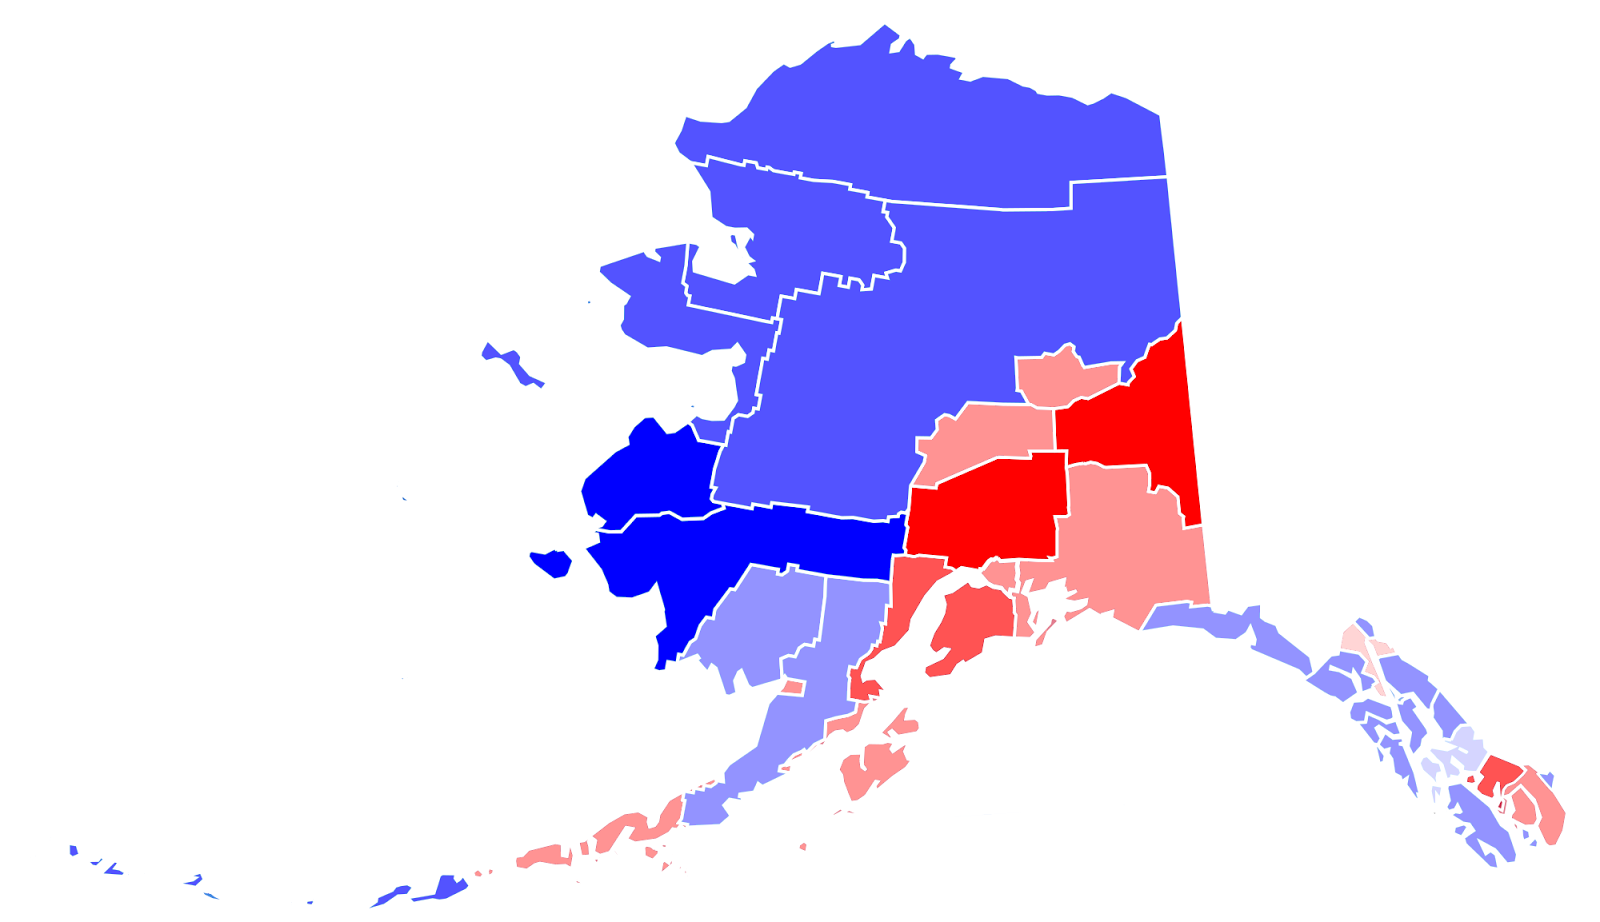 2012 presidential election in alaska results by borough and margin i would ve labeled the boroughs and such but it s really a pain to figure out how the